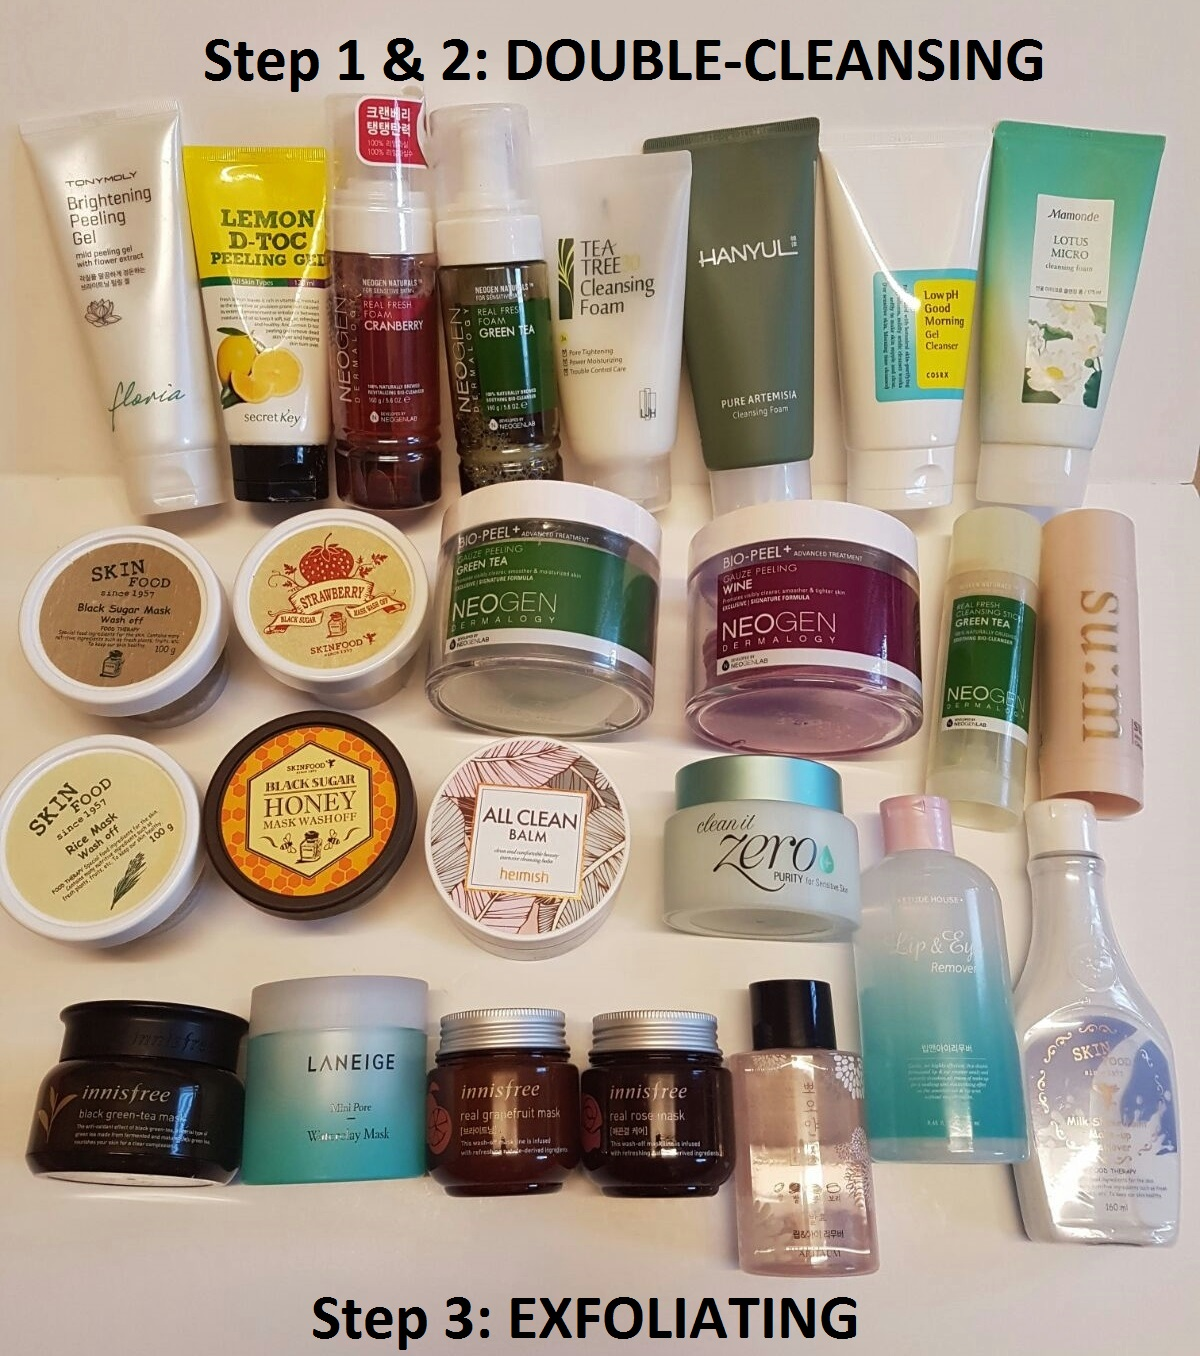 84c23c12a4 KOREAN SKINCARE ROUTINE 101: Part 1: Double-Cleansing & Exfoliating ...